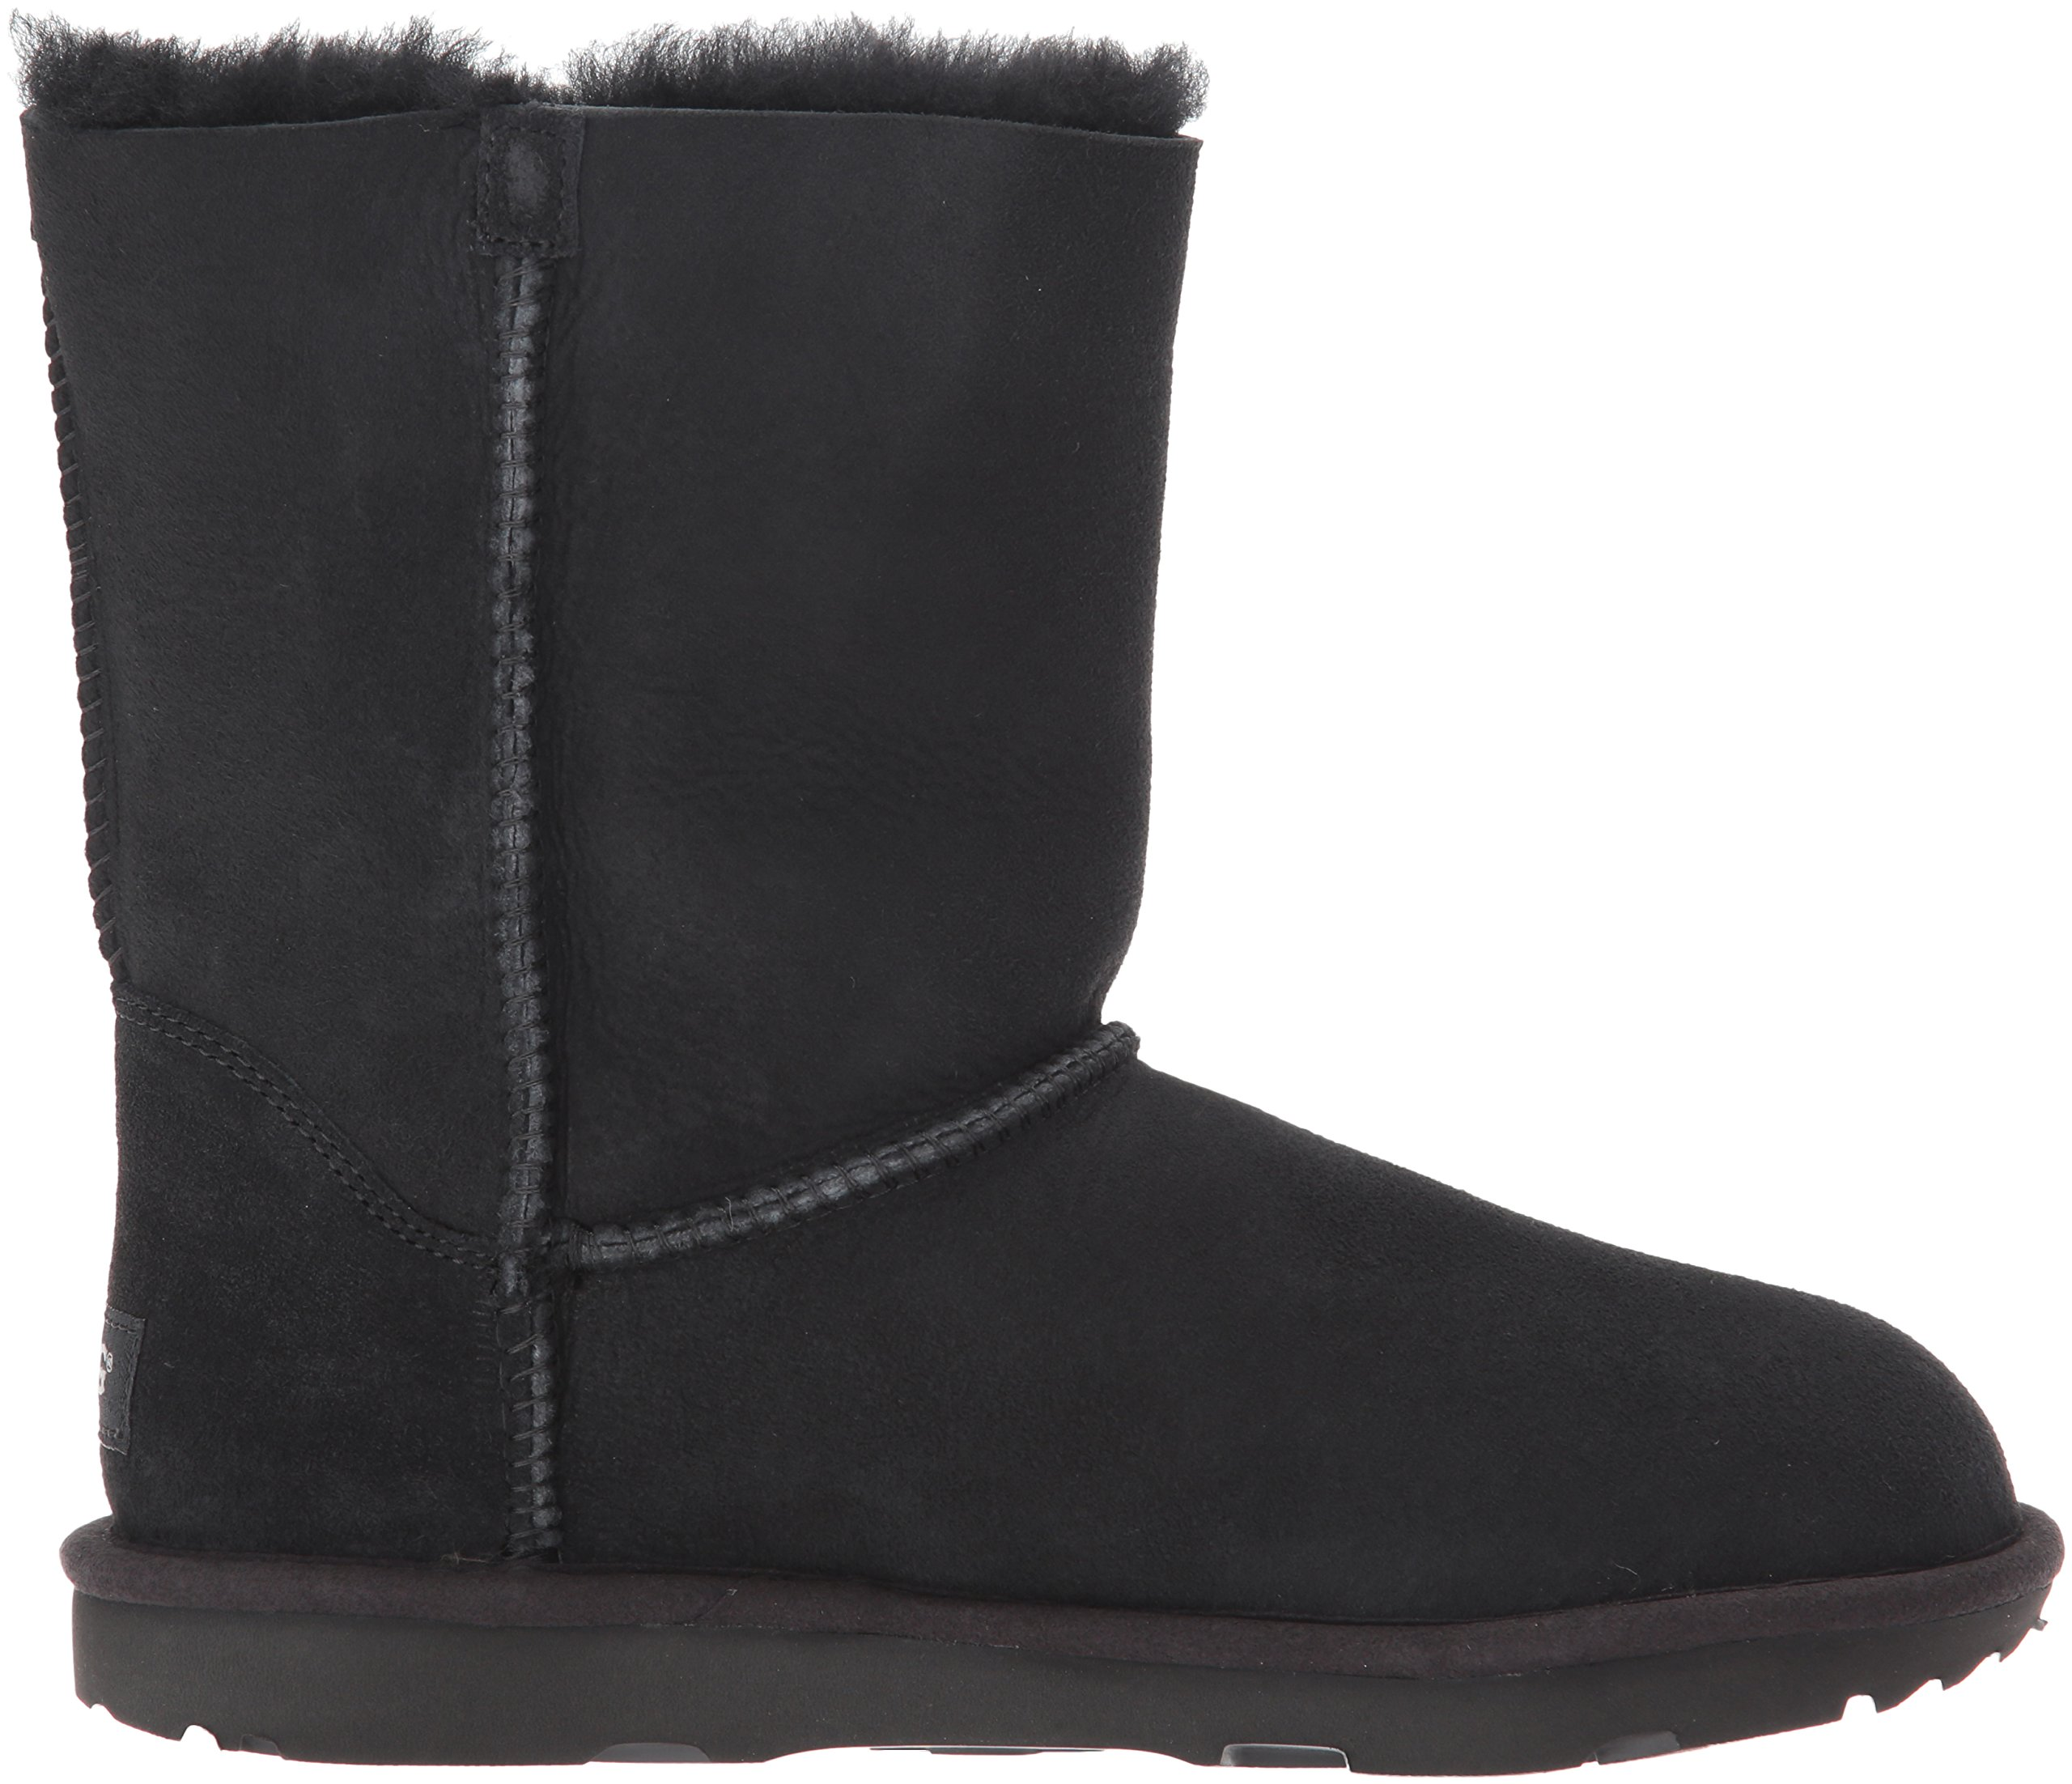 UGG Girls K Pala Pull-on Boot, Black, 1 M US Little Kid by UGG (Image #7)